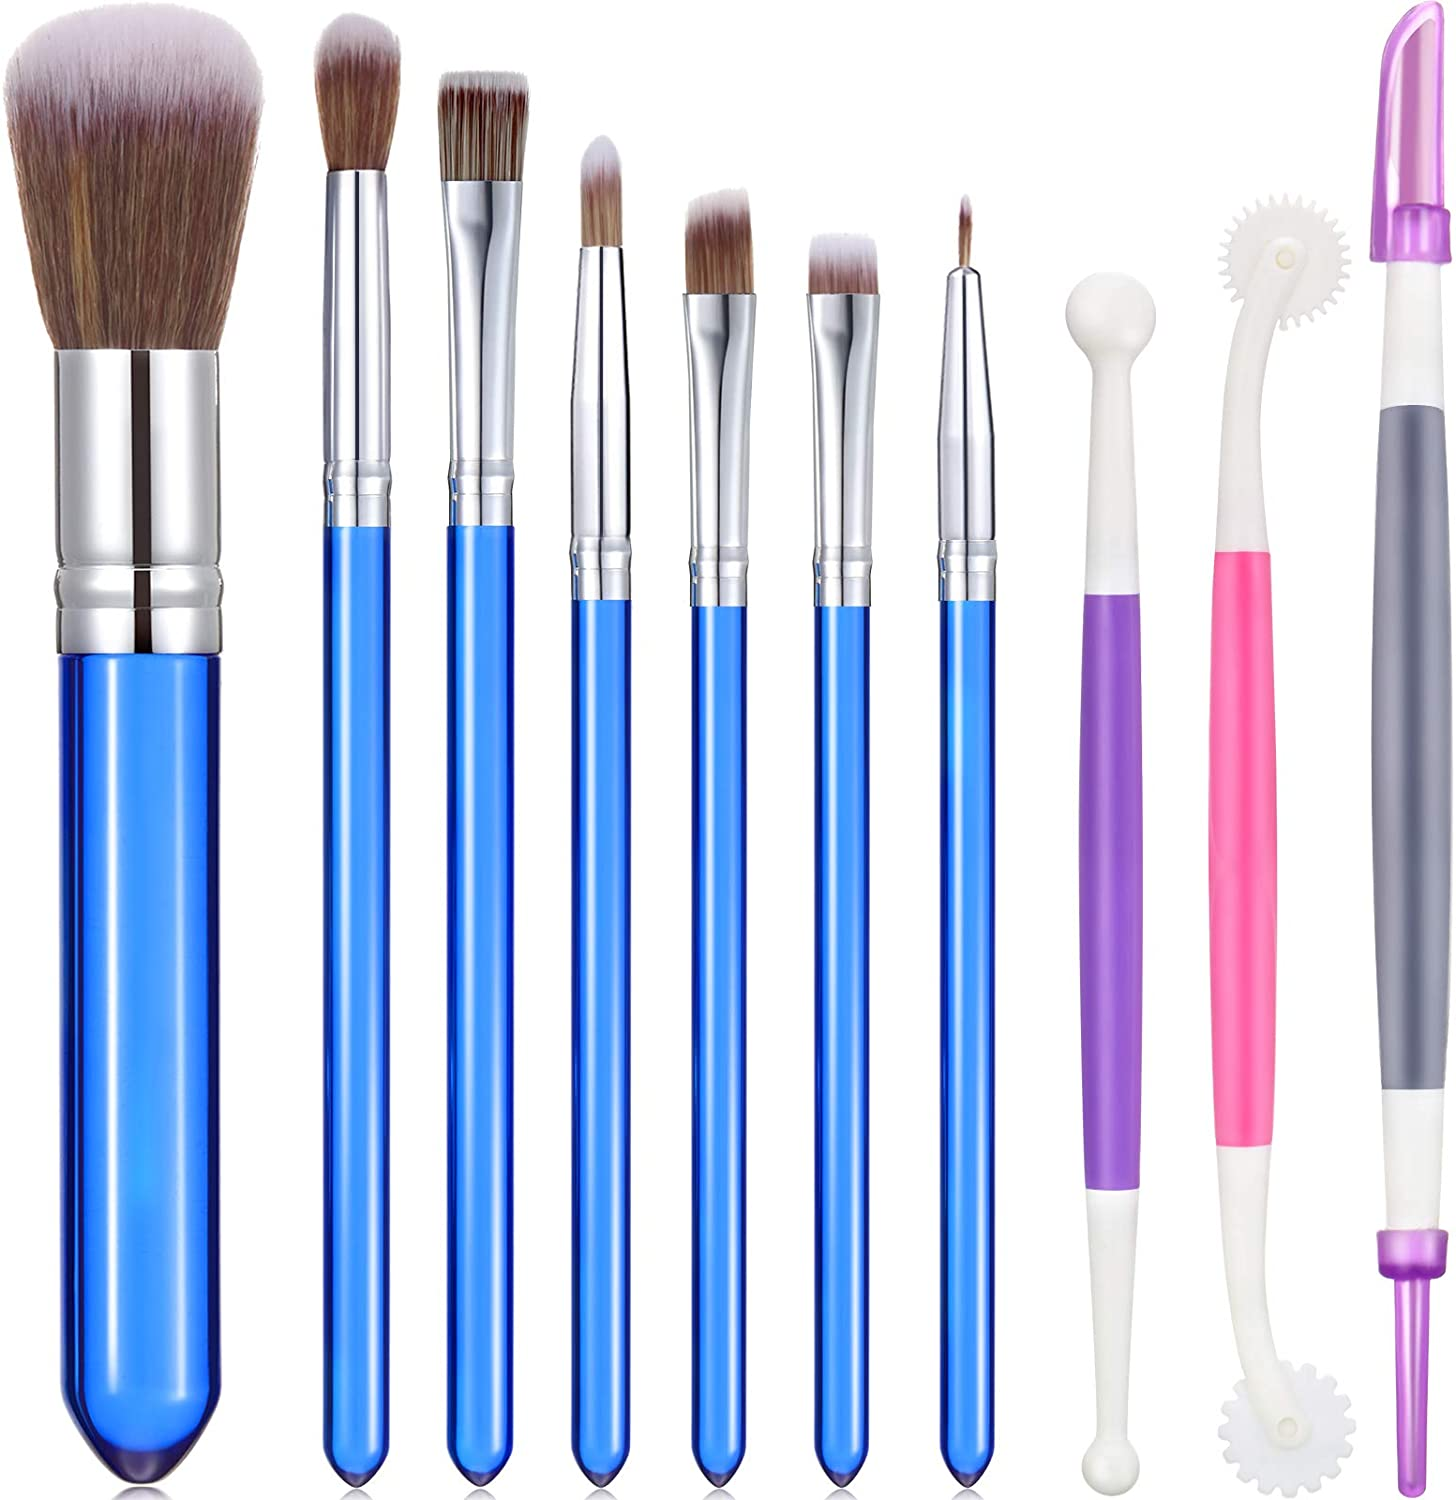 10 Pieces Cookie Decoration Brushes Set Cake Baking Brushes Cookie Decorating Supplies Food Paint Brush for Chocolate Sugar with Fondant and Gum Paste Tool (Blue)